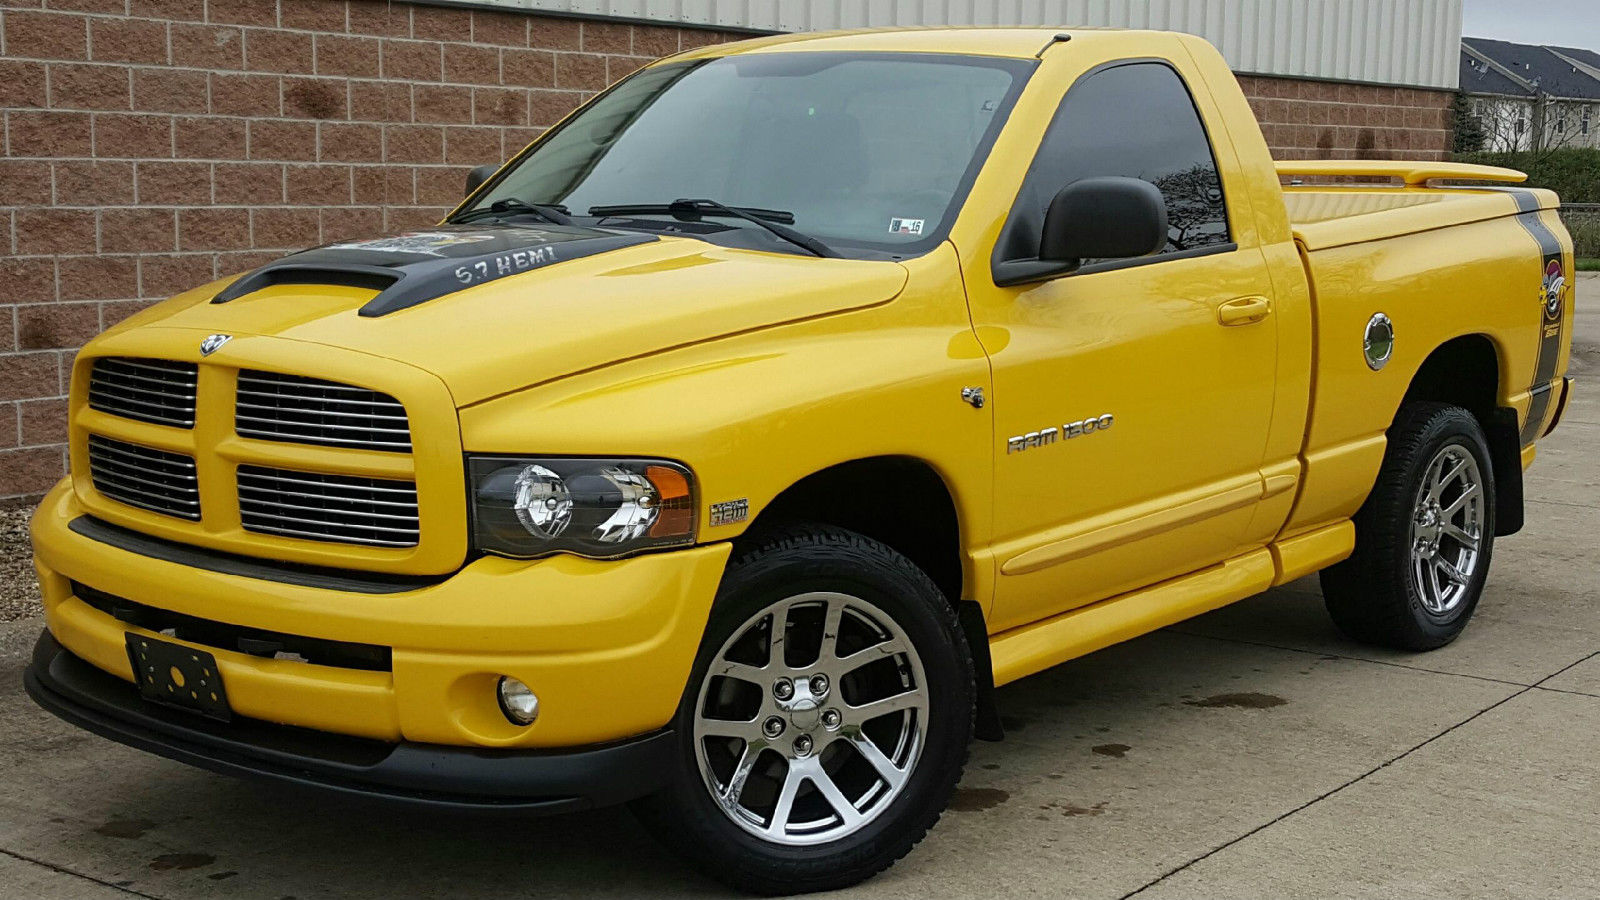 2005 Silverado 1500 >> 2004 Dodge Ram 1500 Rumble Bee (Jeff Pick)